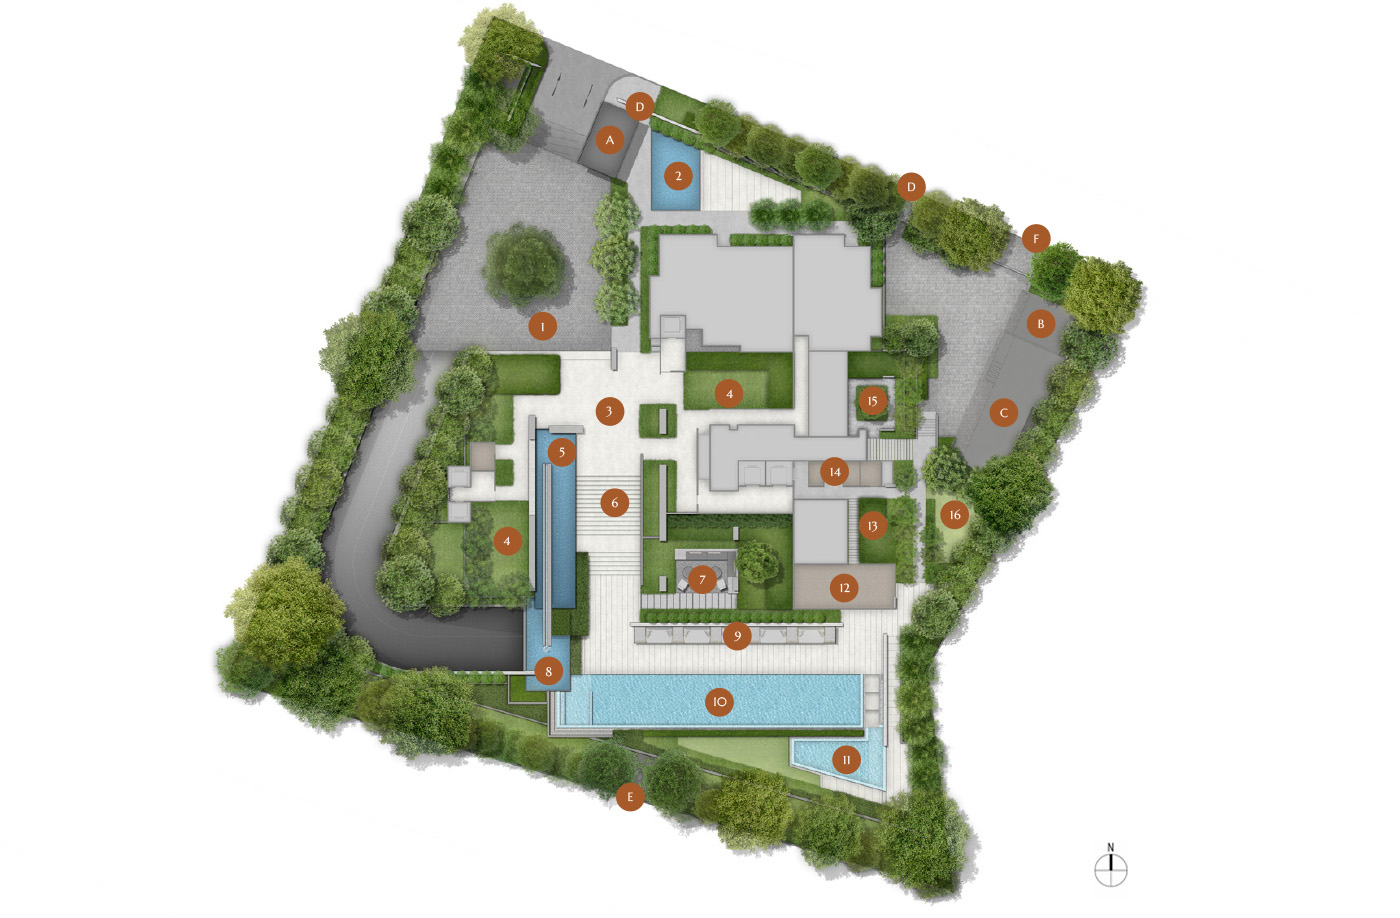 19 nassim, site plan, level 1, roof, facilities